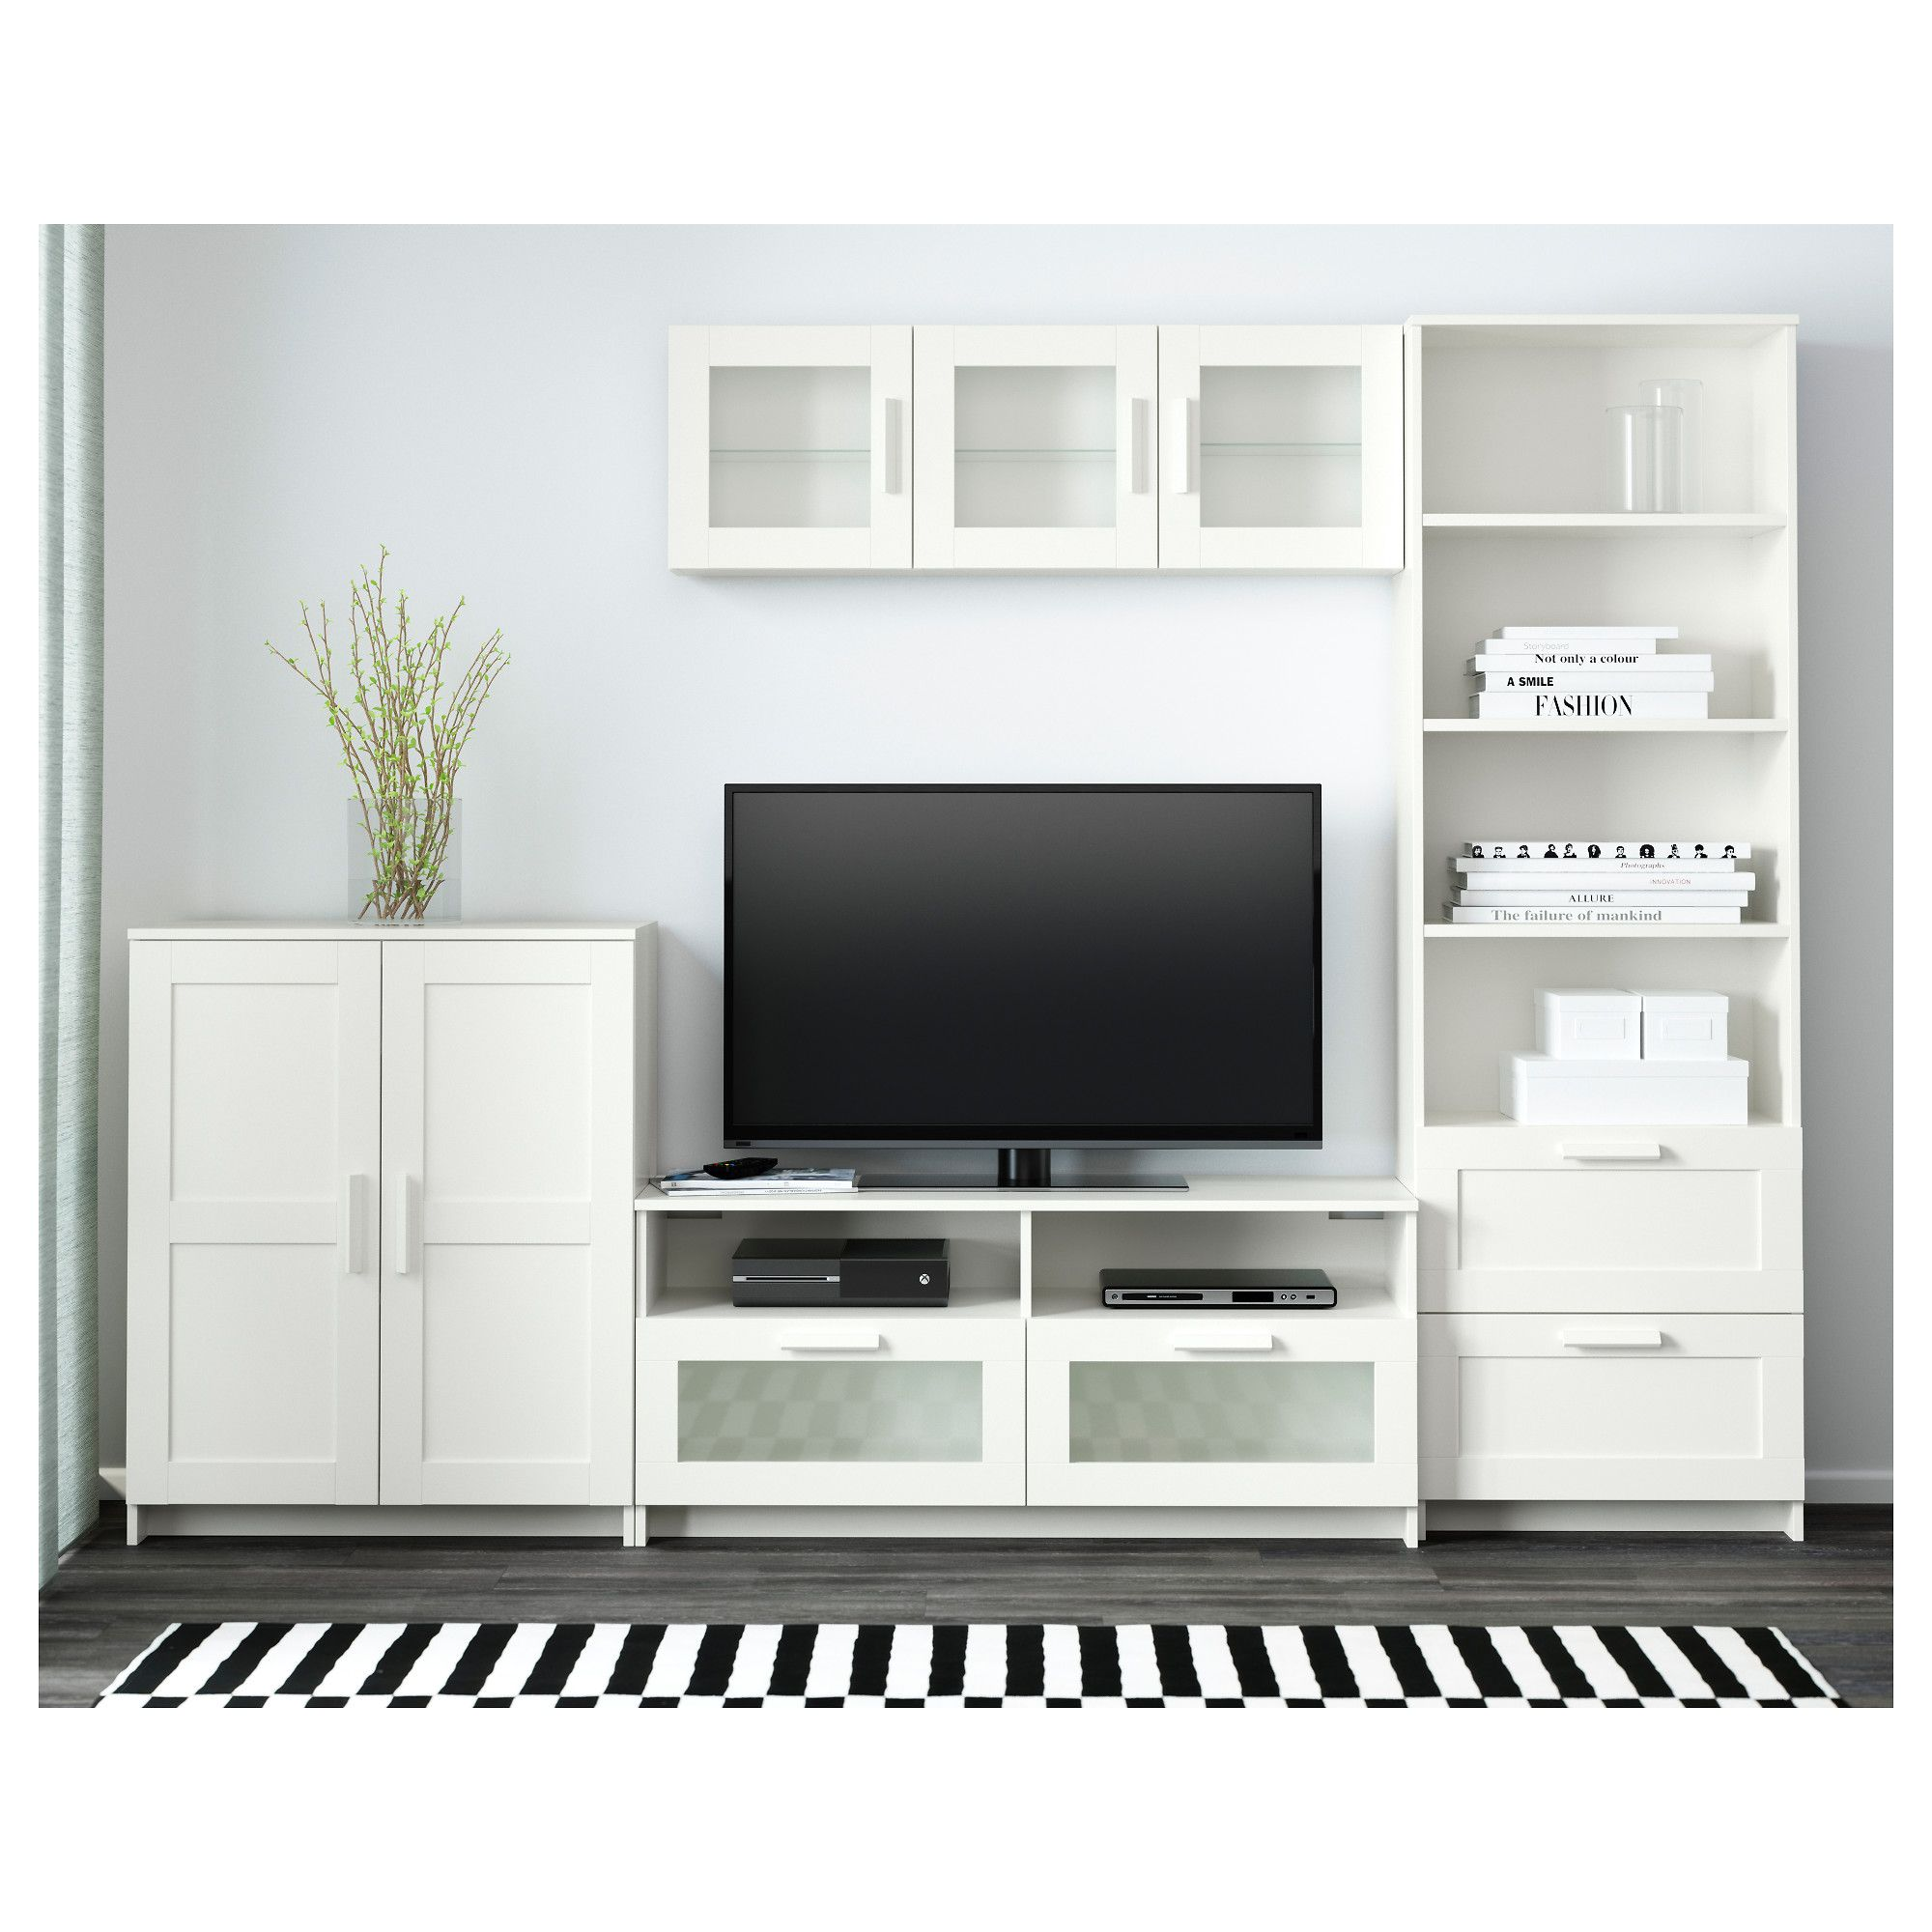 Ikea Brimnes Tv Storage Combination White Storage Ideas Tv